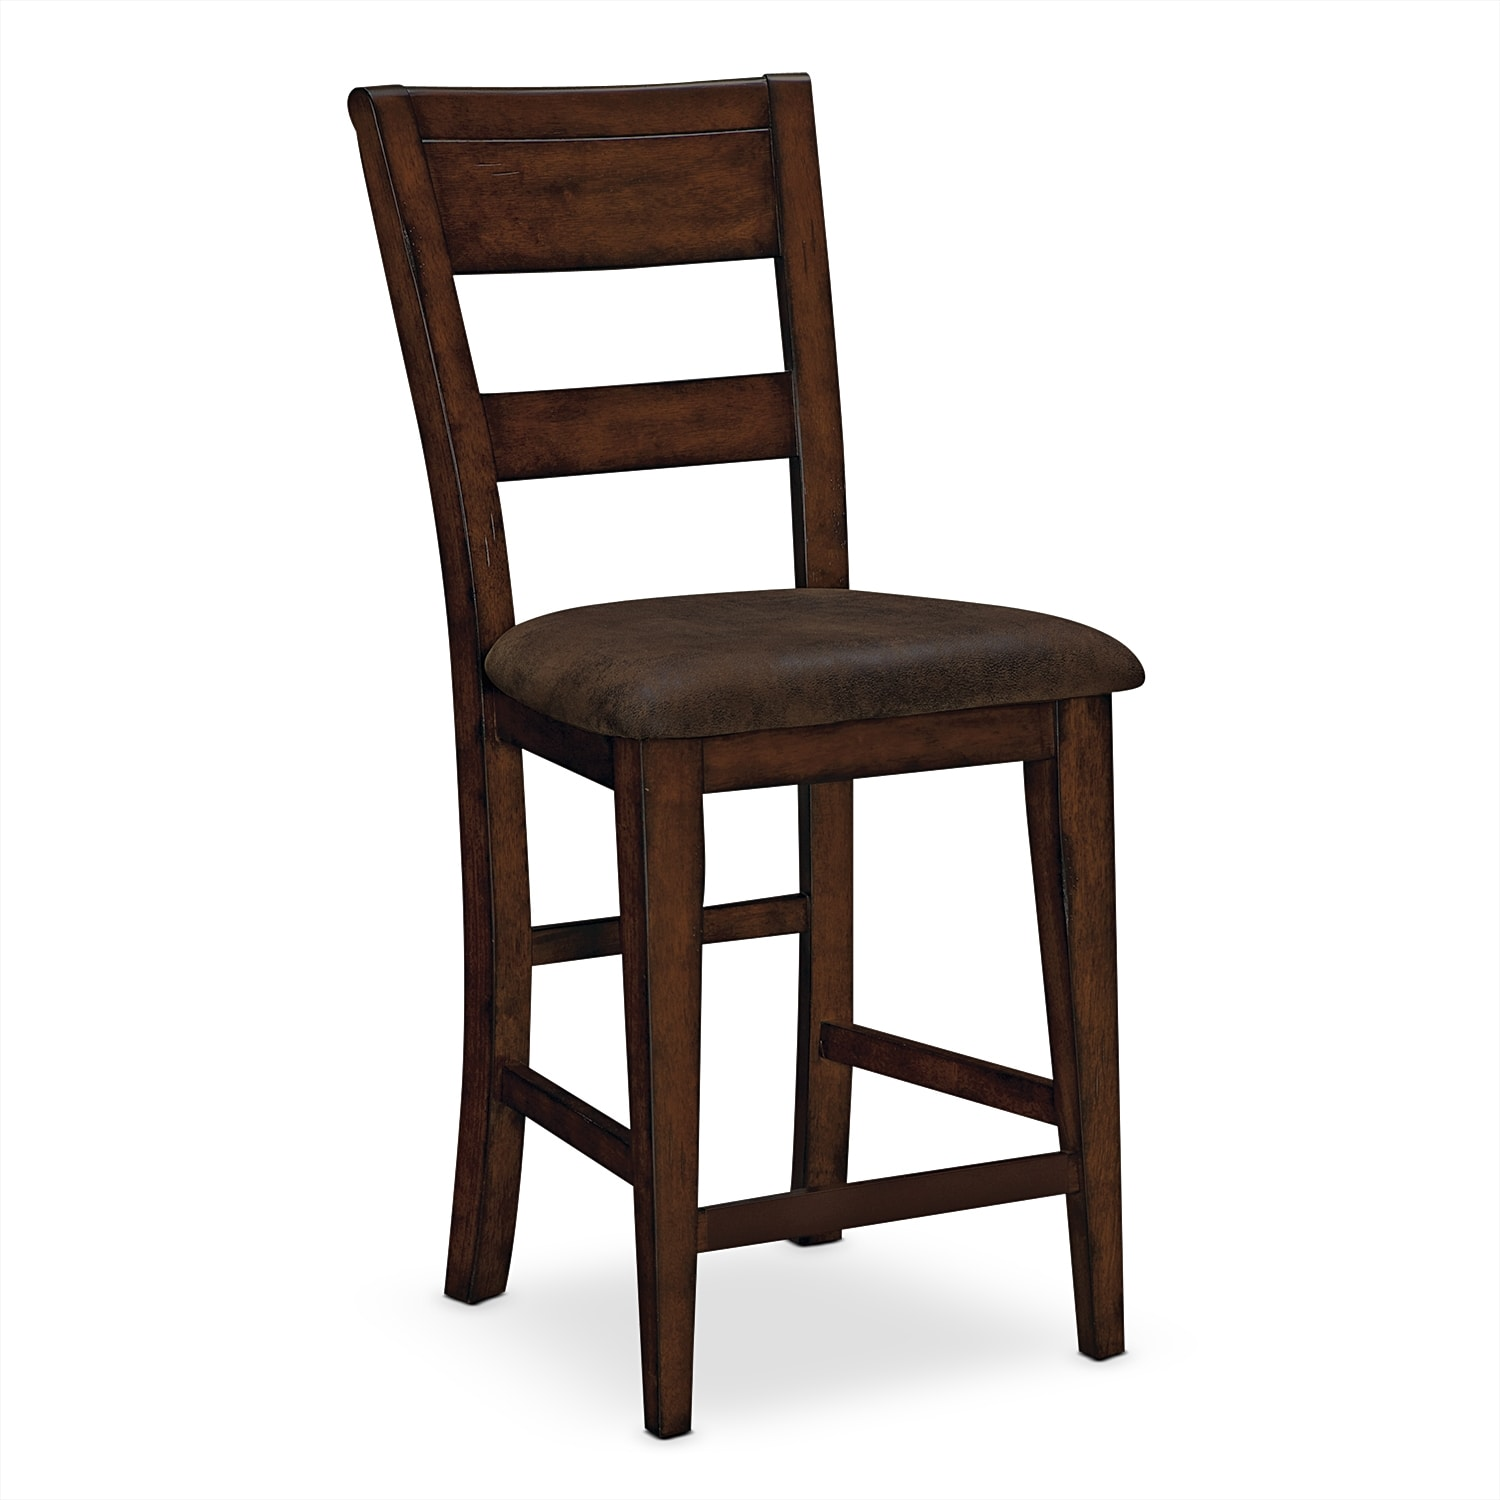 Everett Dining Room Counter Height Stool Value City